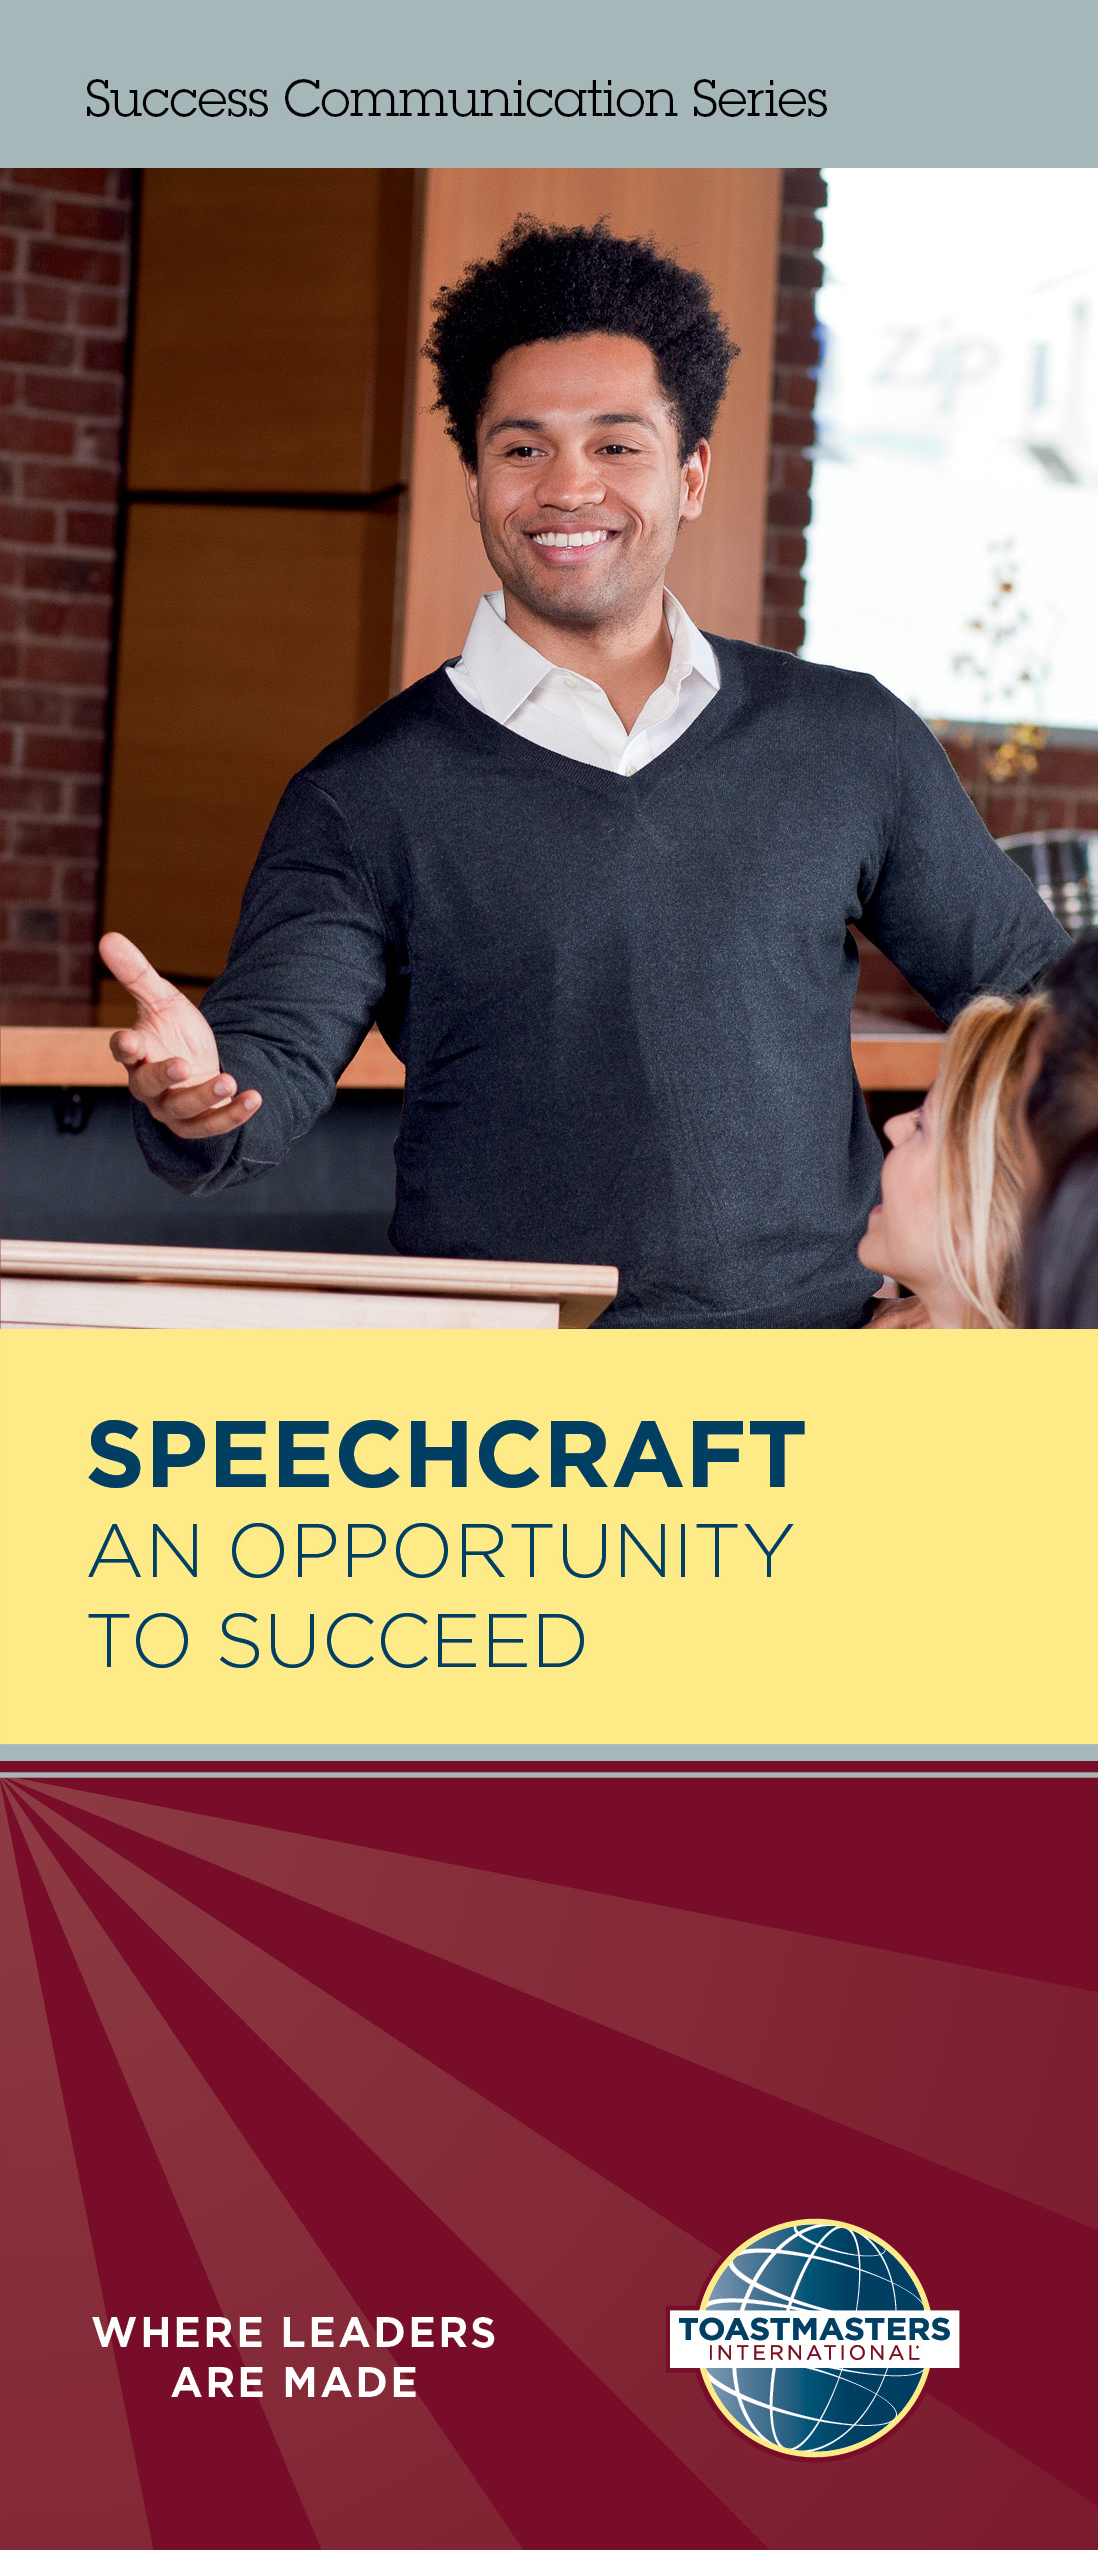 Speechcraft: An Opportunity to Succeed Brochure